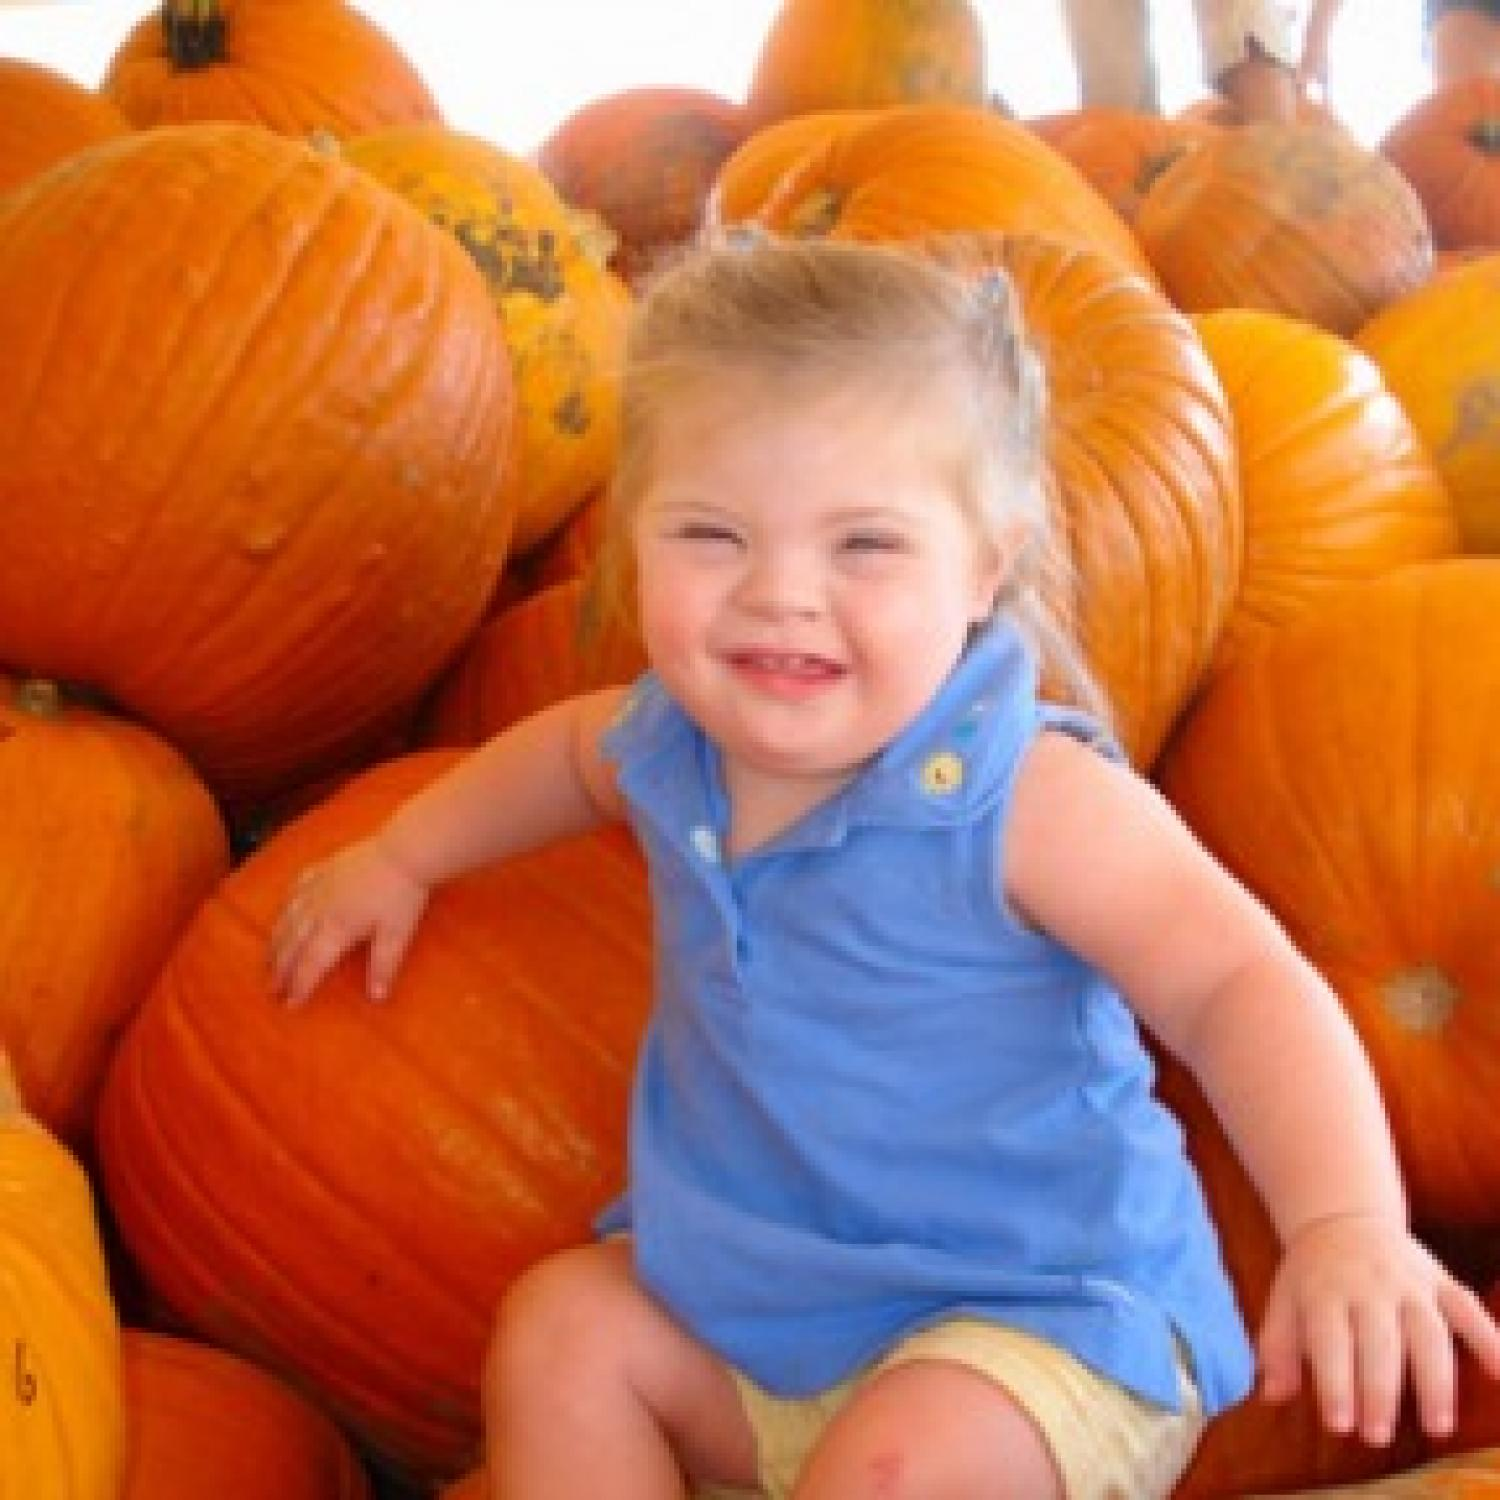 A Special Joy Babies With Down Syndrome Galleries